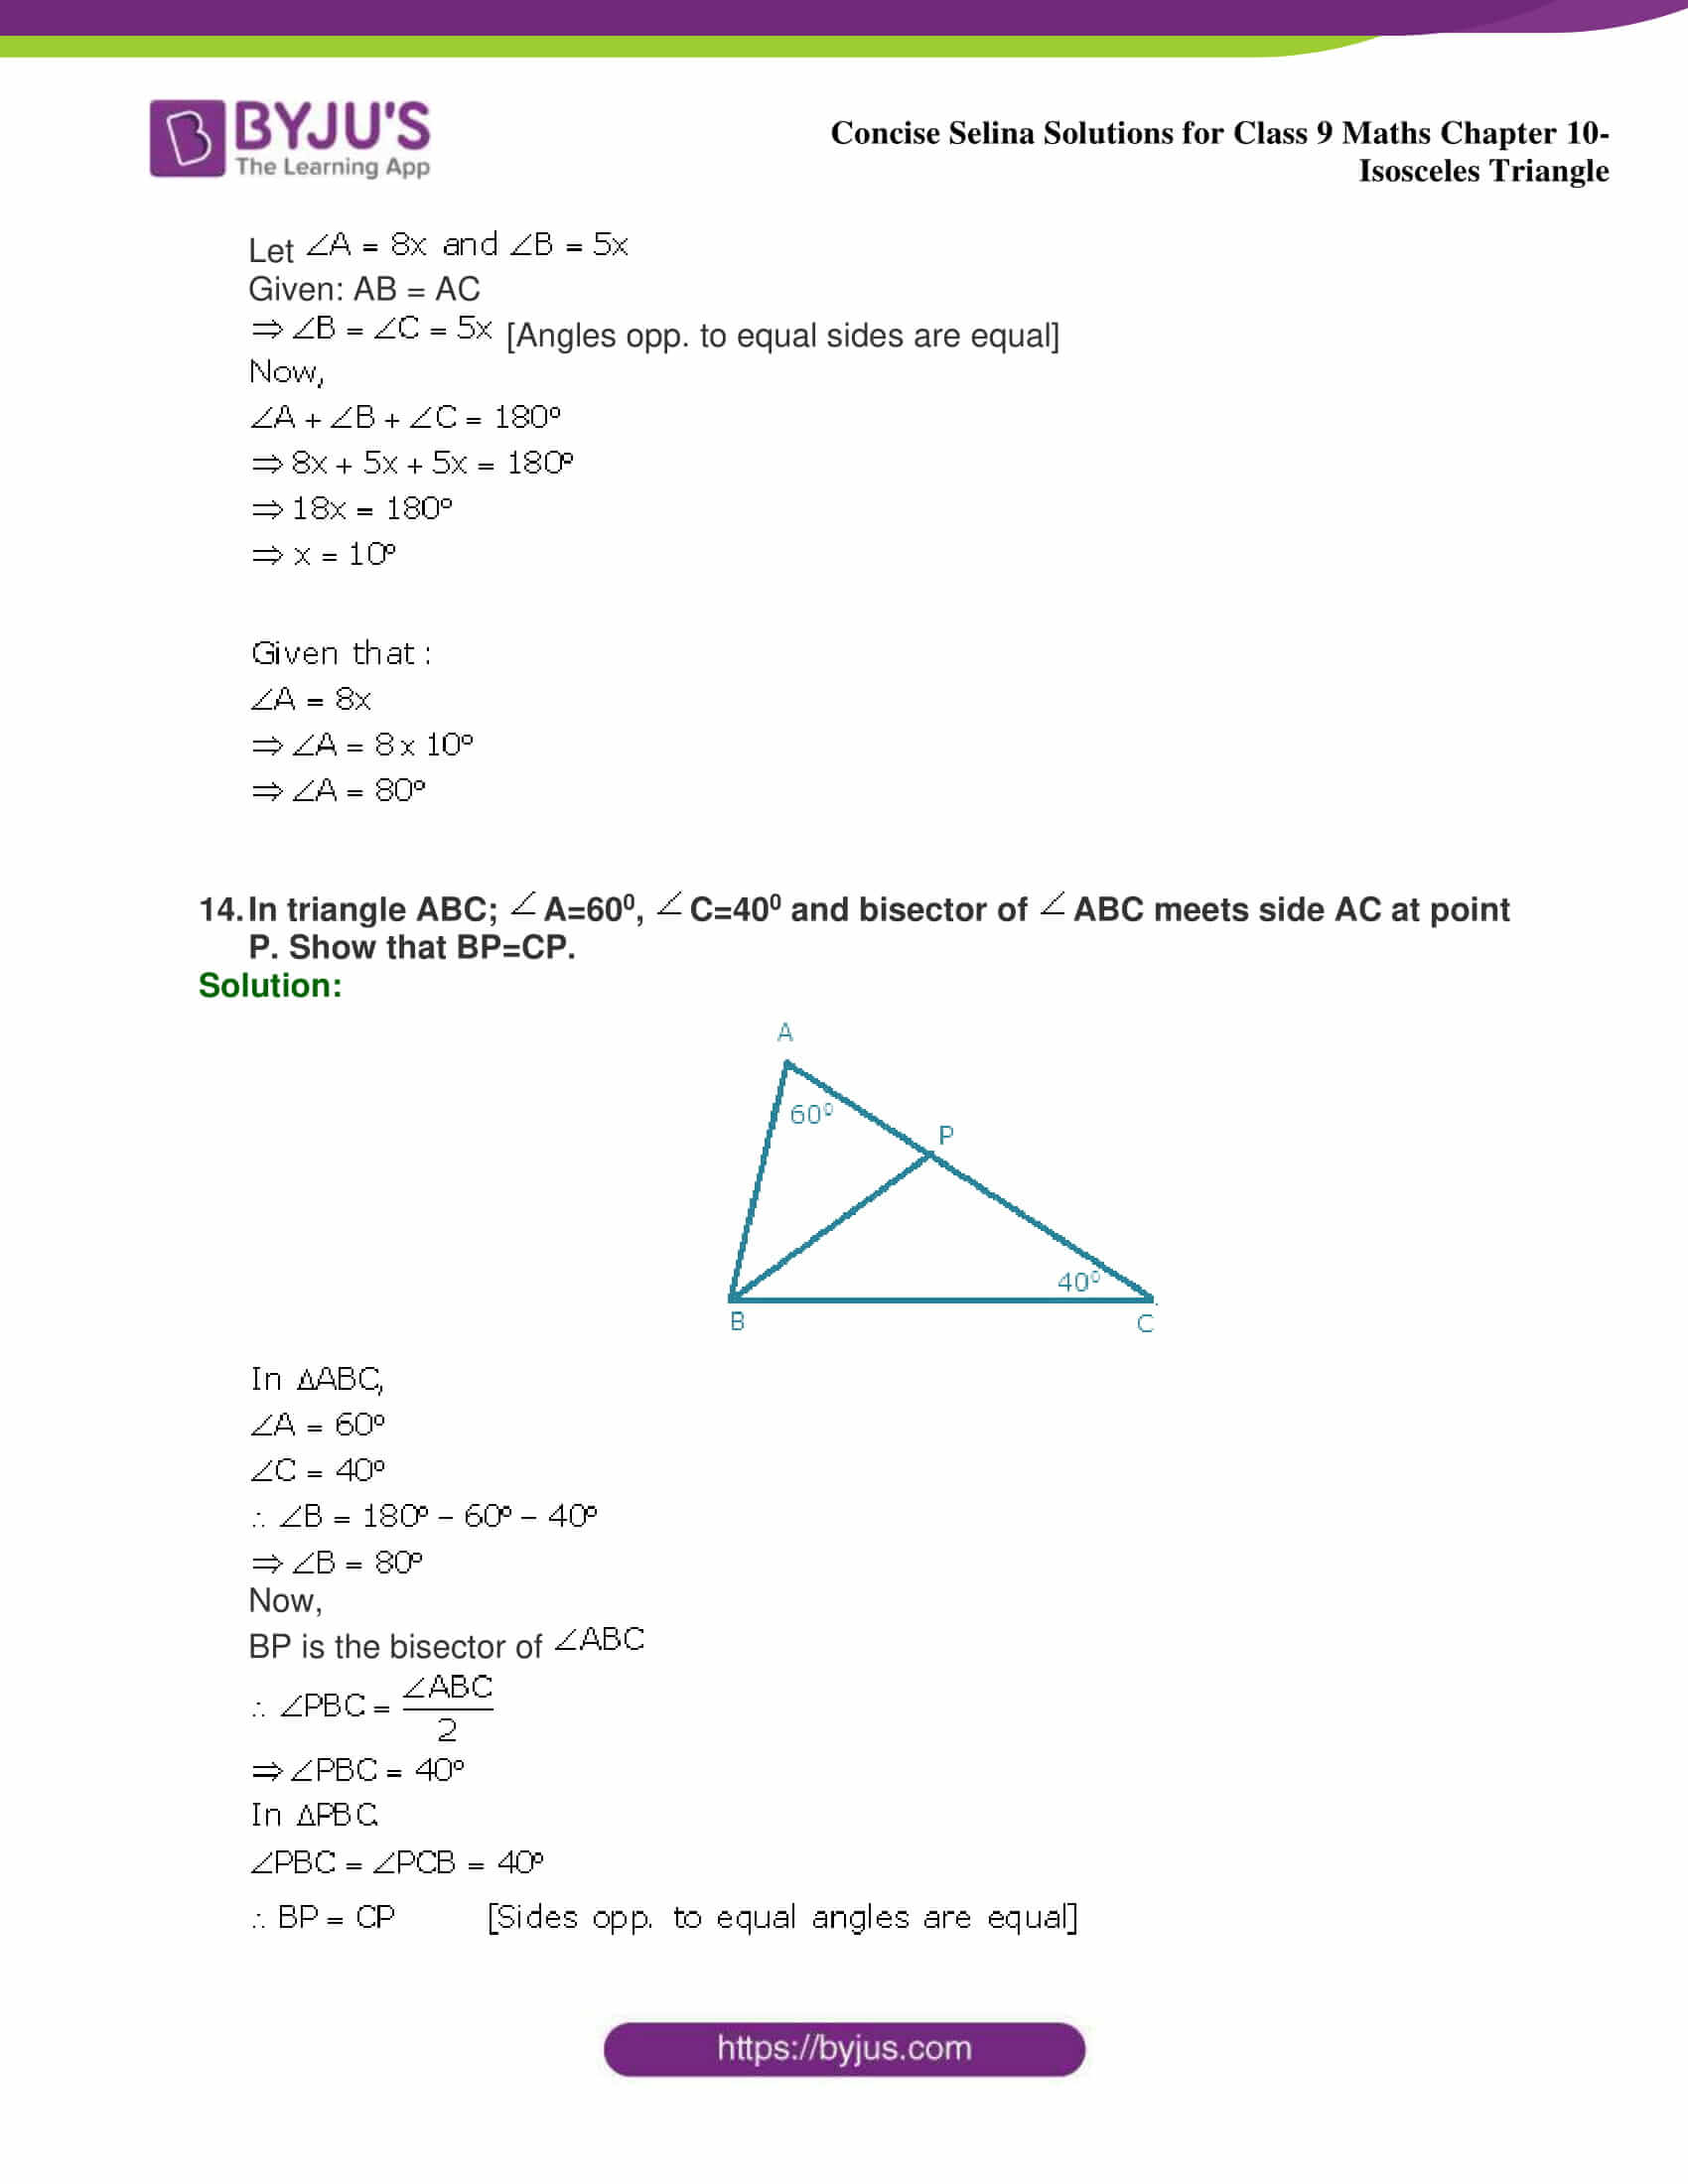 selina Solutions for Class 9 Maths Chapter 10 part 14